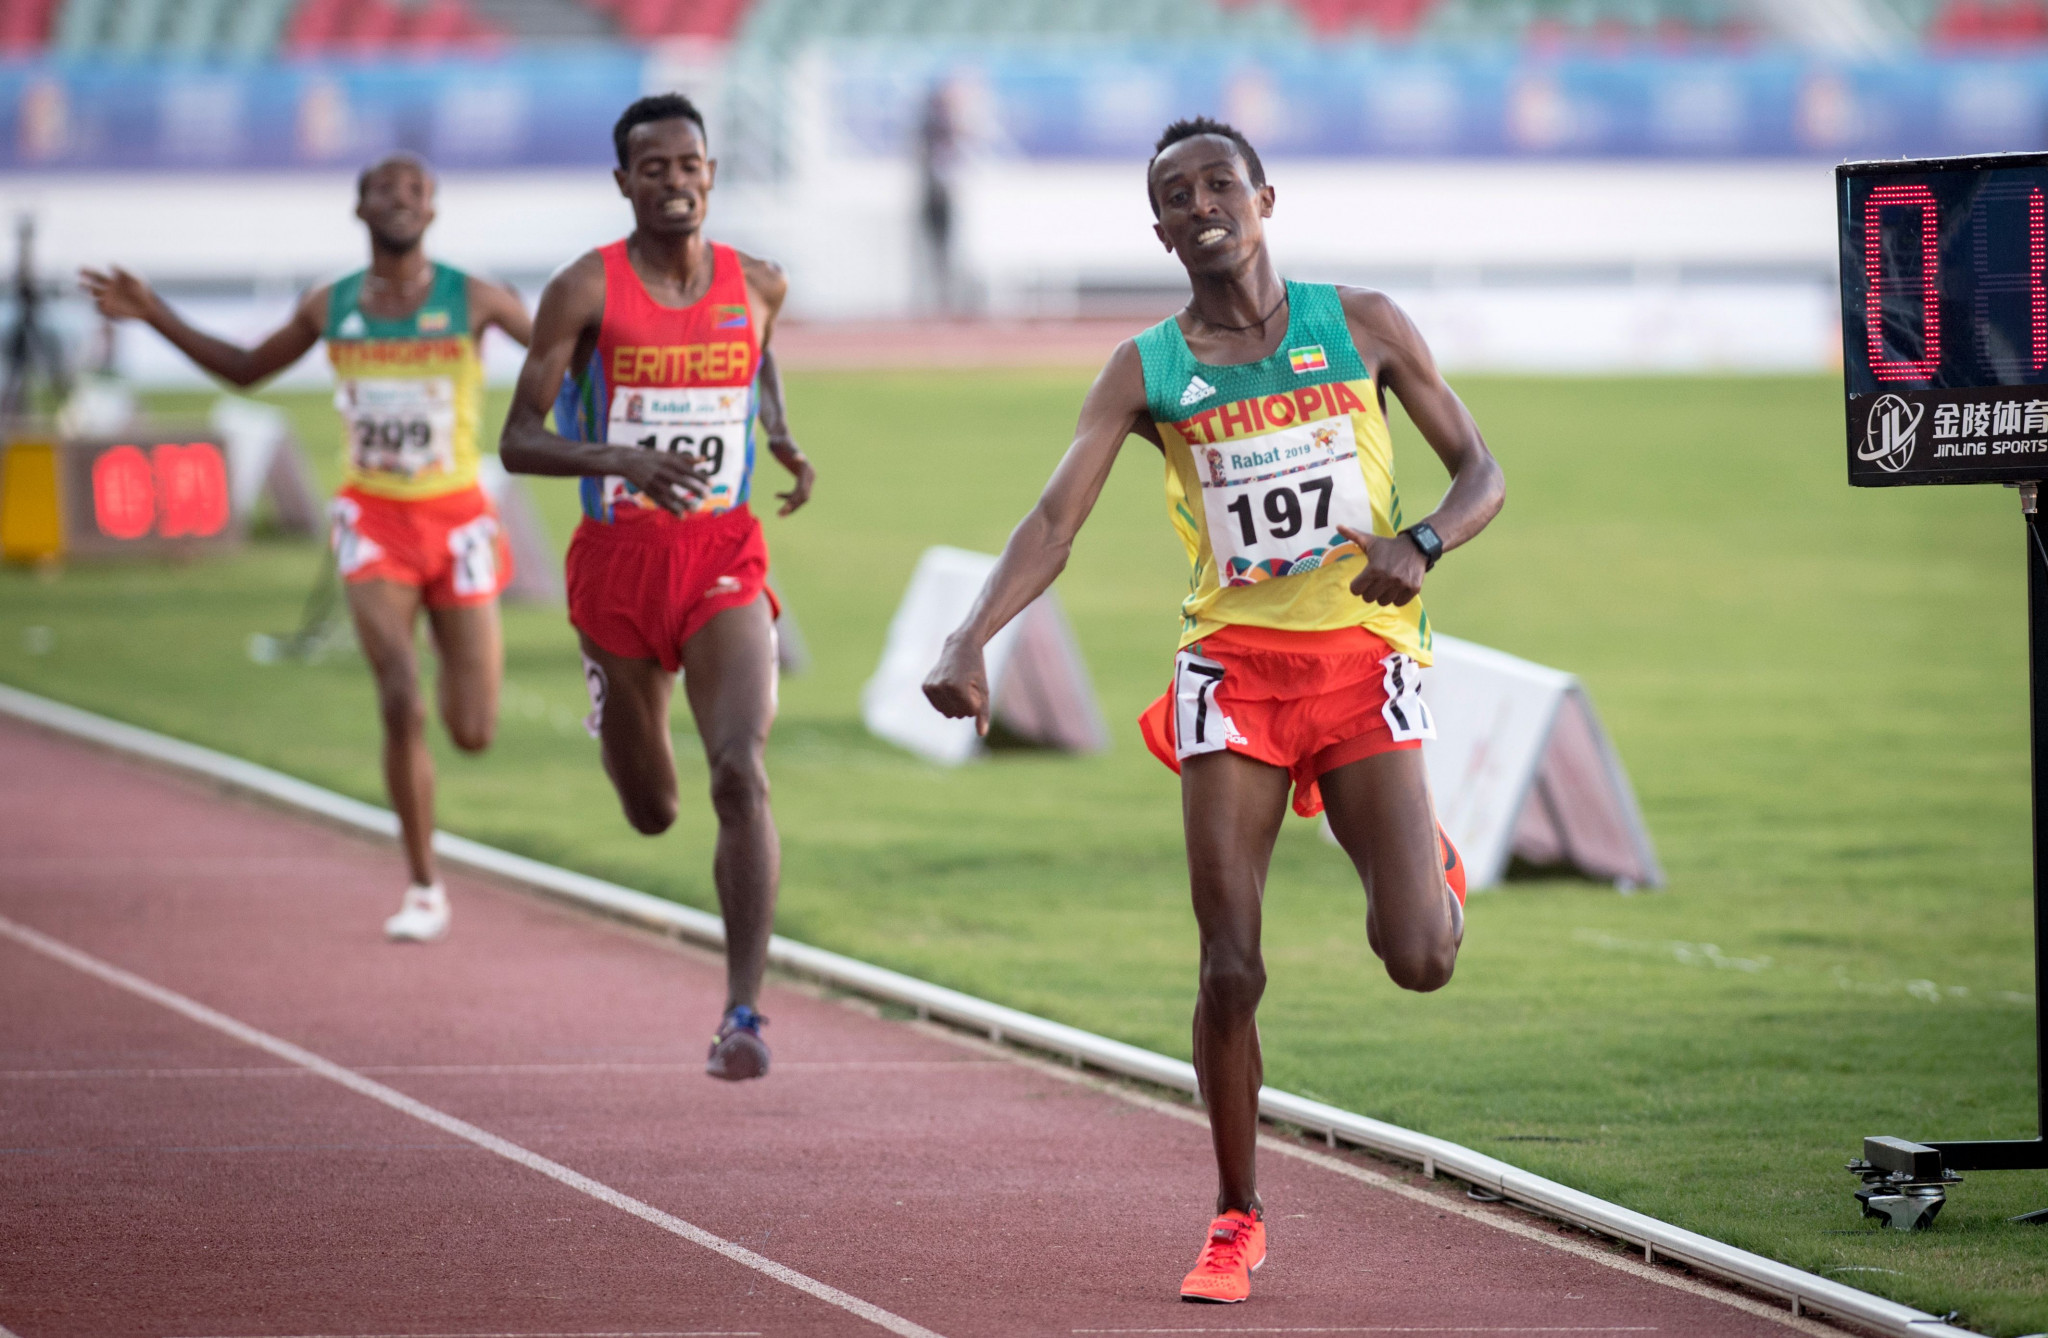 Berehanu Tsegu crosses the line to win the 10,000m at the African Games in Rabat in August ©Getty Images